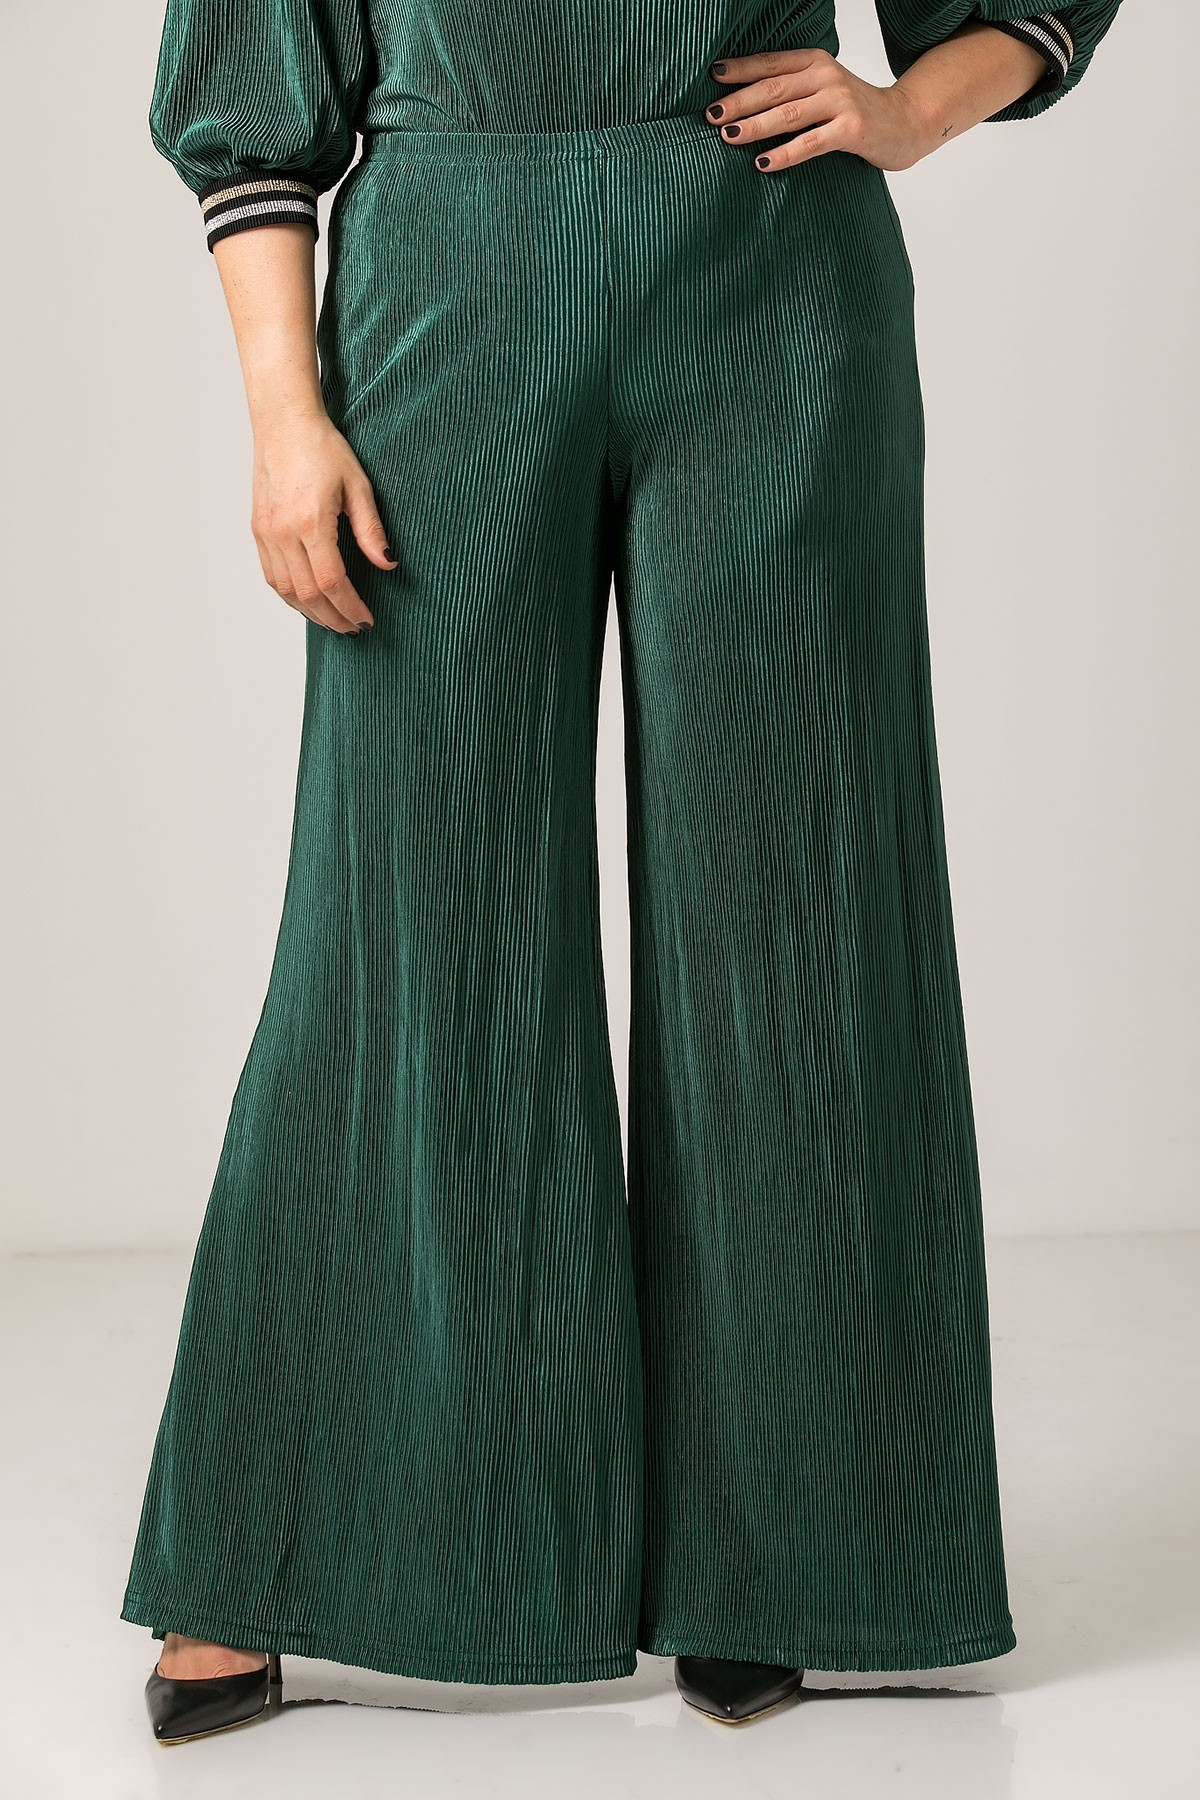 GREEN PLEATED WIDE LEG TROUSERS